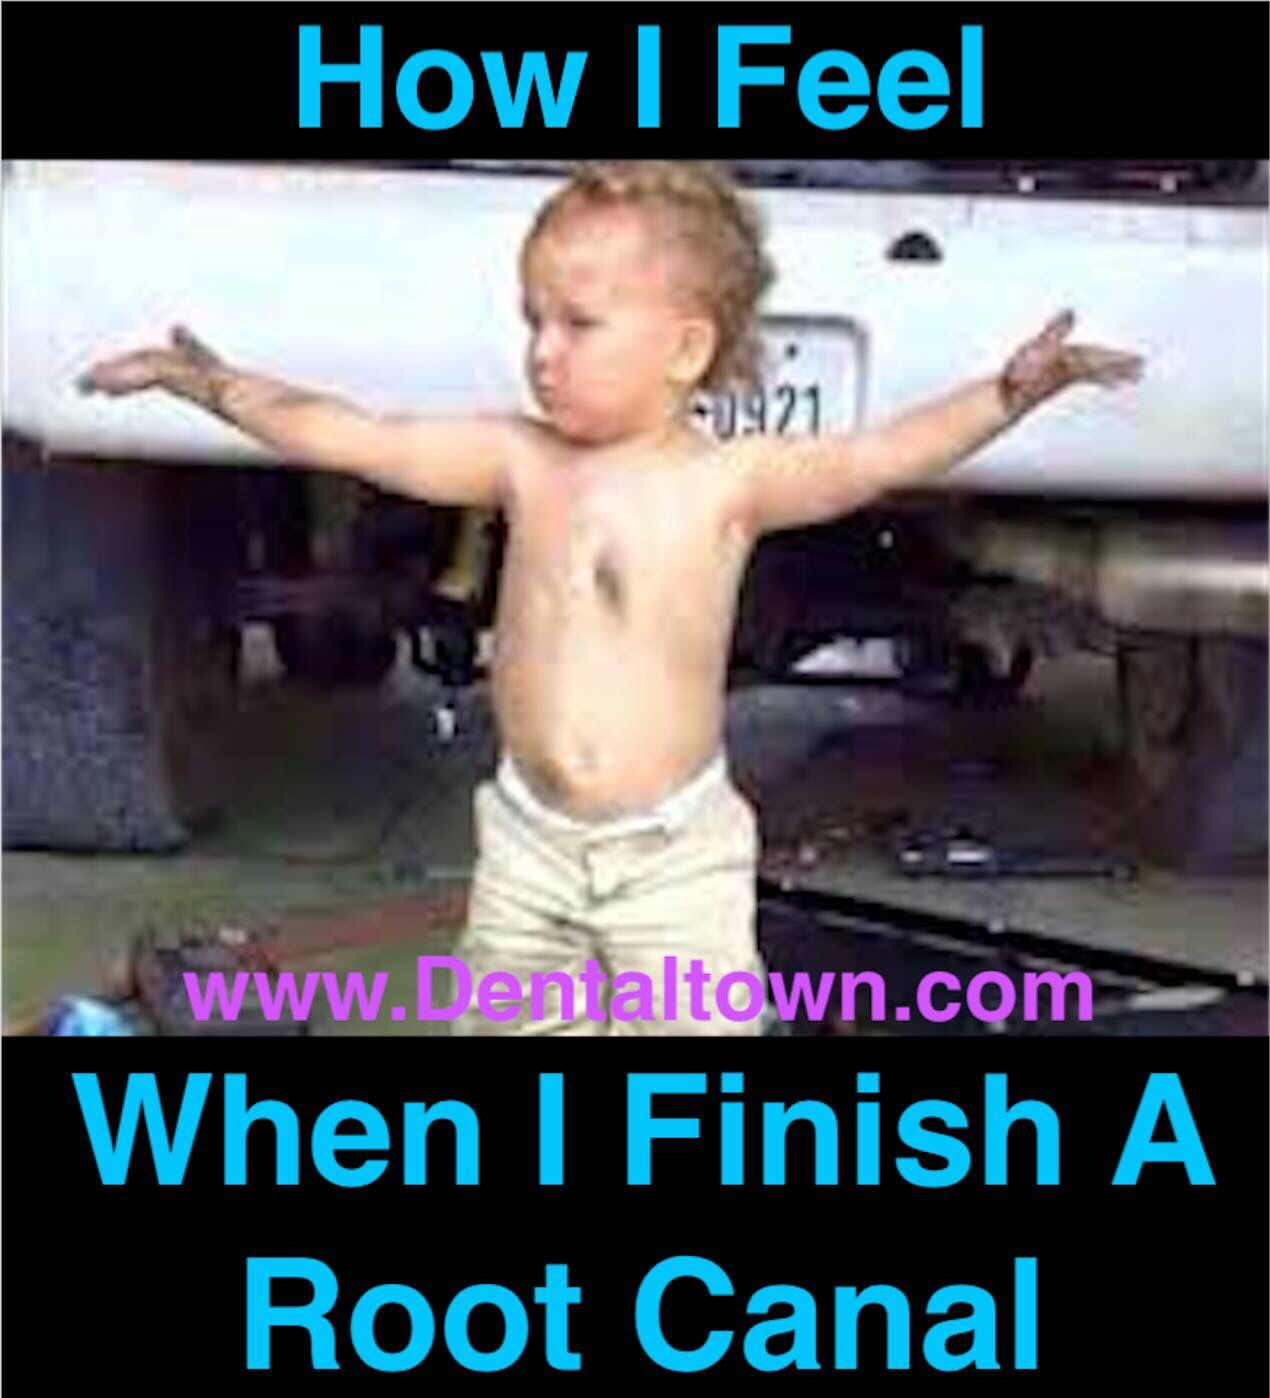 7f31cf4c729f15315a54d35dbc5b08ff how i feel when i finish a root canal! words to live by